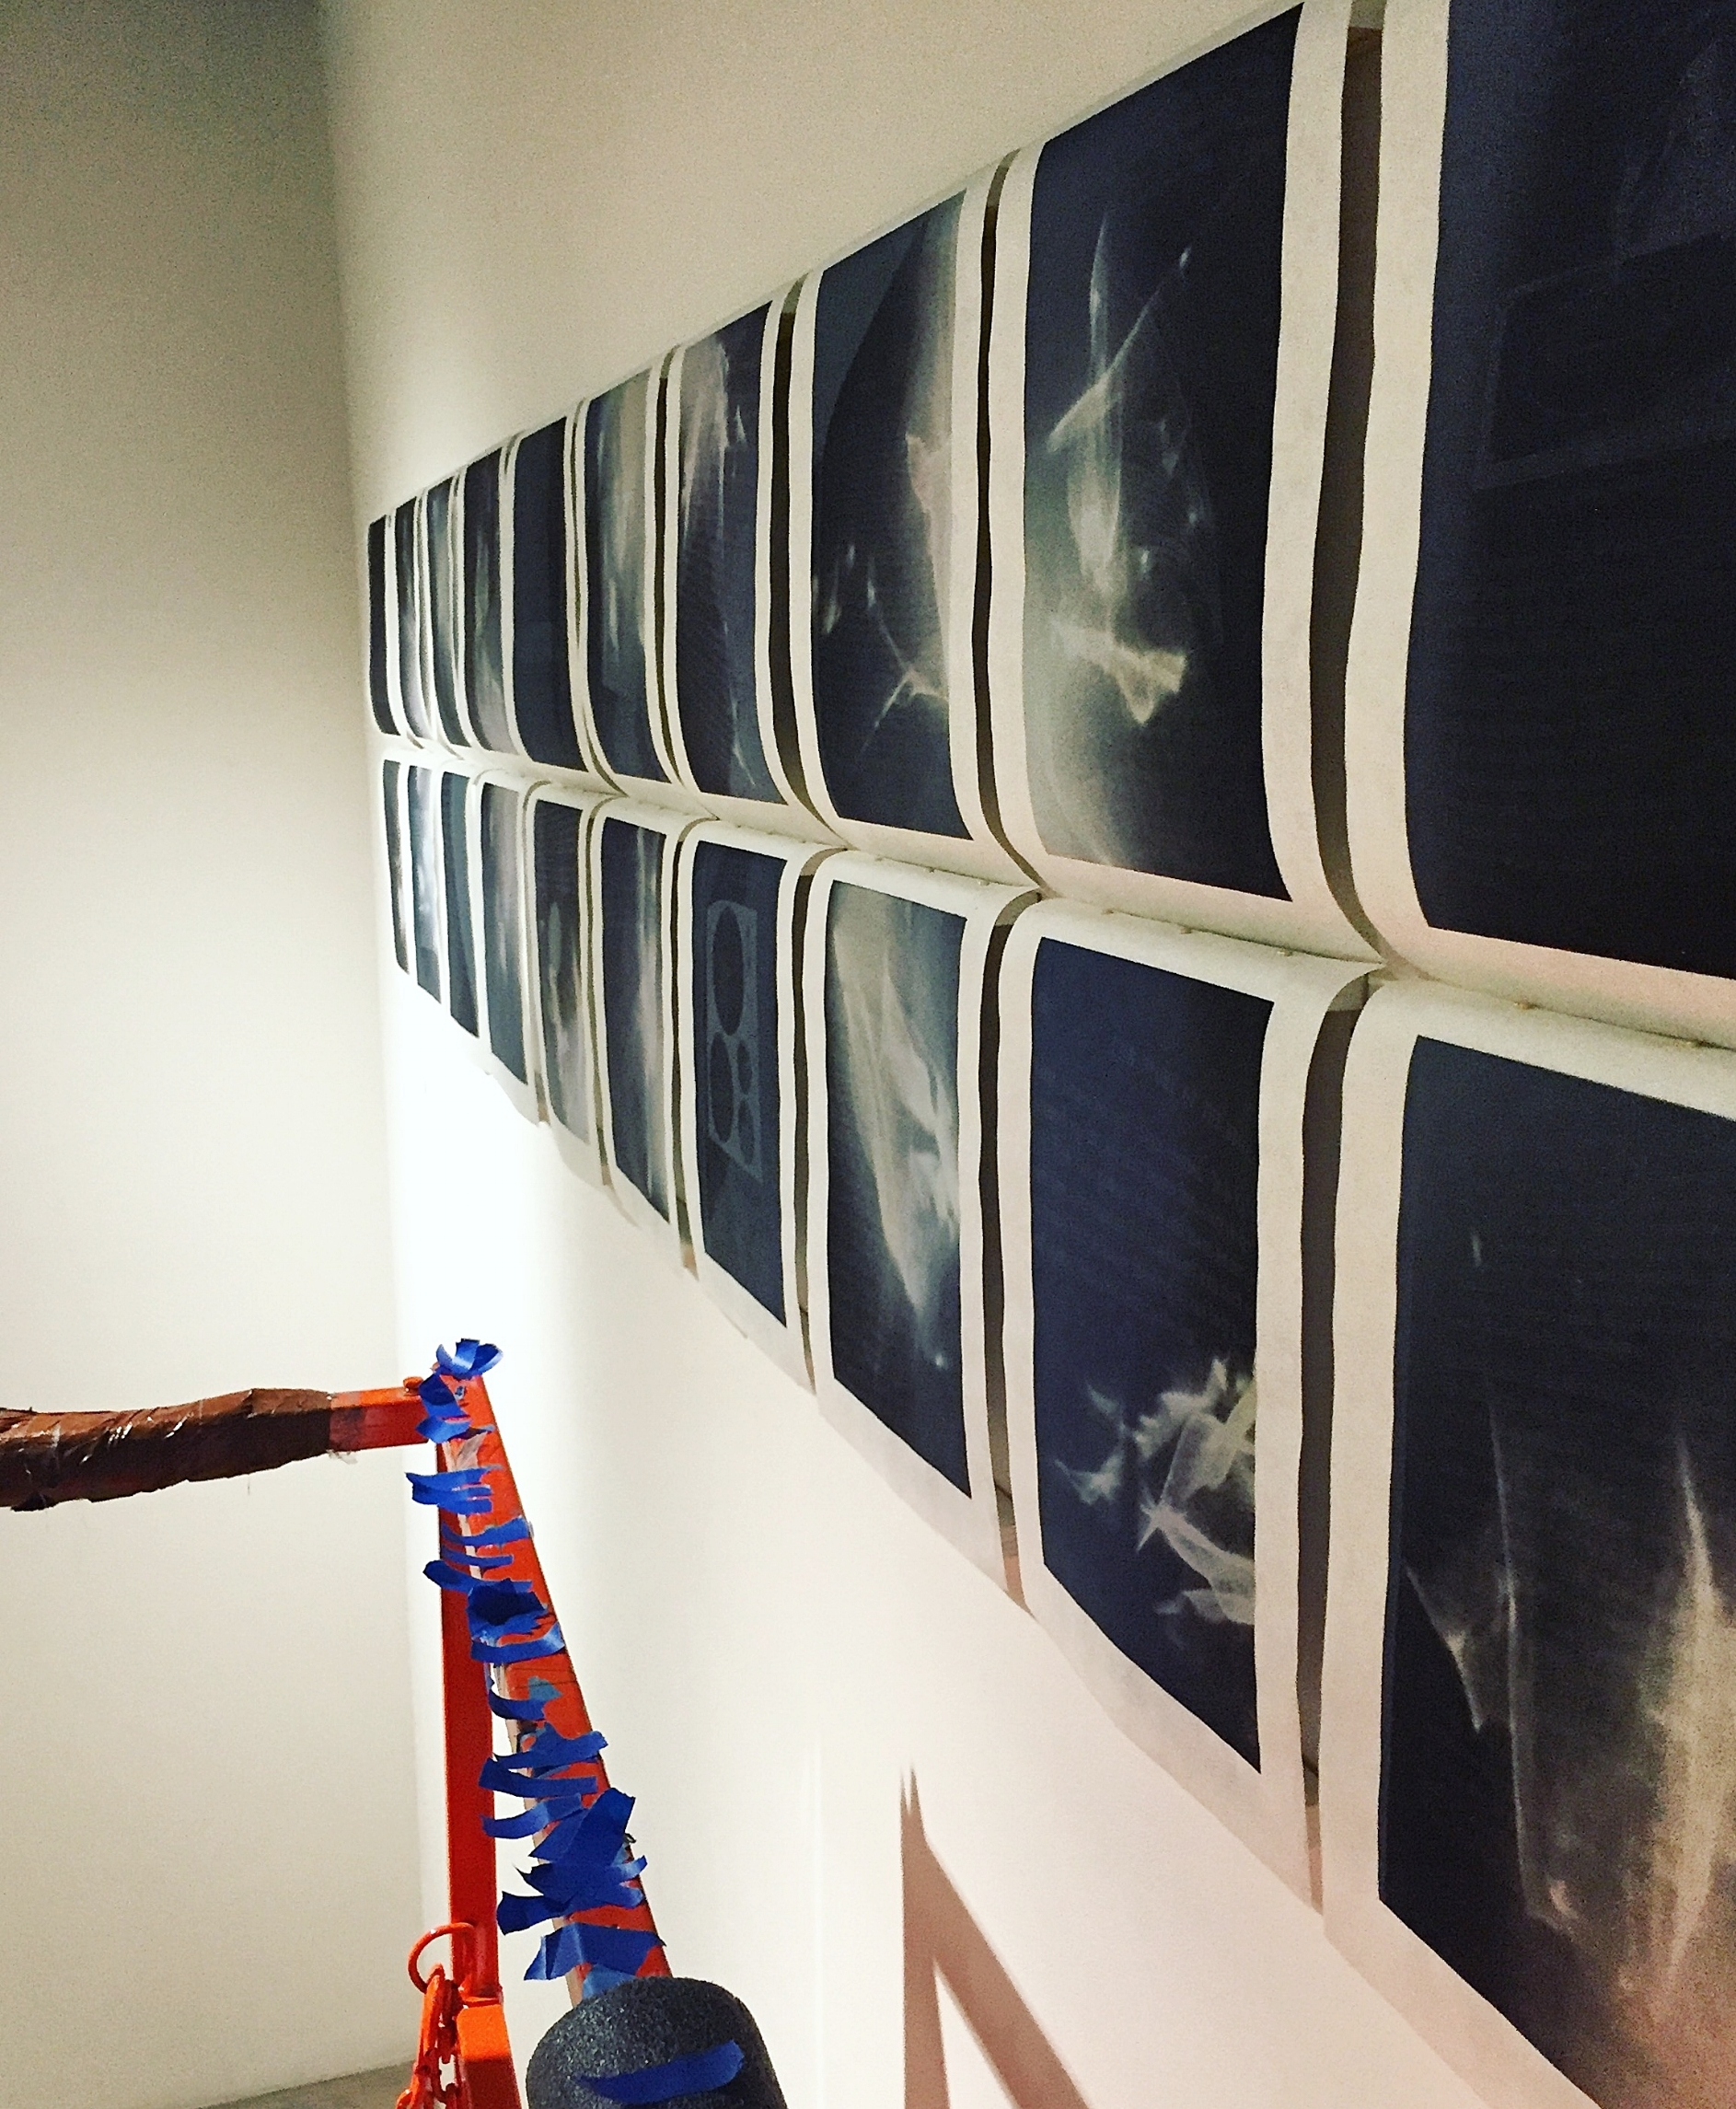 RECENT EXHIBITIONS   OCTOBER 2018   Connect & Collect,  ICA's 38th annual art auction, San Jose, CA  FEBRUARY- JUNE 2018   Printstallations  (Group Show)  San Jose Institute of Contemporary Art, San Jose, CA   REVIEW    SquareCylinder.com     Printstallations @ the San Jose ICA  , David Roth, March 18, 2018   PRESS    SF Arts Monthly     Gallery Highlights: Printstallations   , Christian Frock, March 2018    E-Squared Magazine     Story of the Heavens with Sarah Sanford    (Printstallations), March 9, 2018   OCTOBER 2017   New Works: Sarah Sanford  (Solo Show)  Stripe, Santa Cruz, CA  JANUARY- FEBRUARY 2017   Lightfast  (Solo Show)  Steckline Gallery, Newman University, Witchita, KS   PRESS   https://news.newmanu.edu/sarah-sanford-lightfast/     RECENT AWARD   2017  Rydell Visual Arts Fellowship Nominee      TEACHING APPOINTMENTS   RECENT  2019   Silkscreen,  UCSC Summer Session  Session 2: July 29- August 30     RESIDENCY   2016   Visiting Artist , SCAD Lacoste, France  April-May